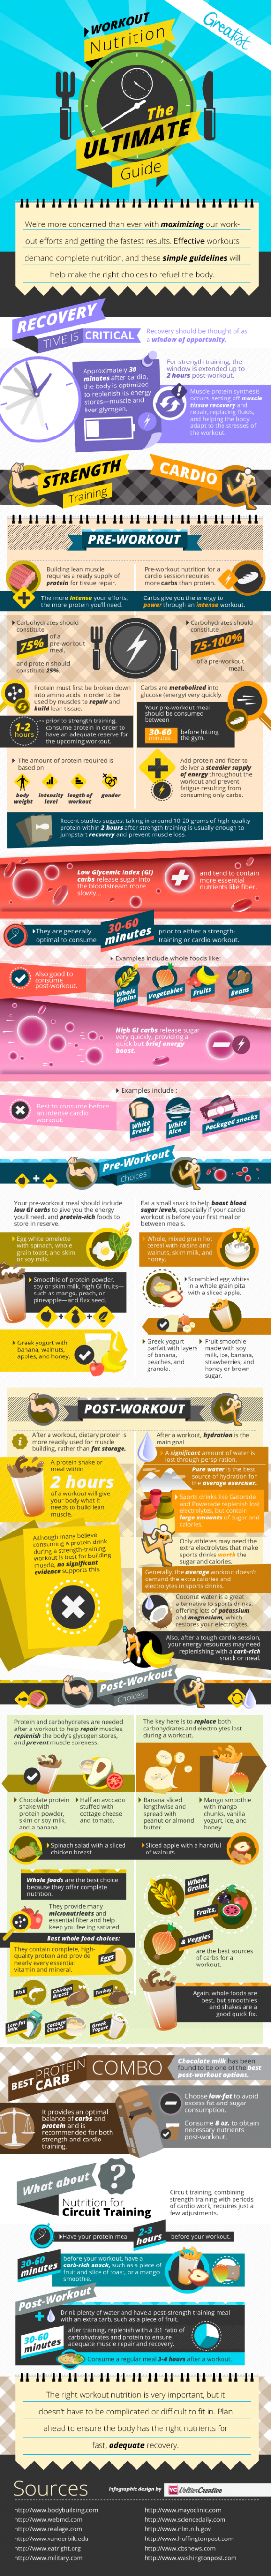 Exercise Nutrition: The Complete Guide to Workout Nutrition Infographic